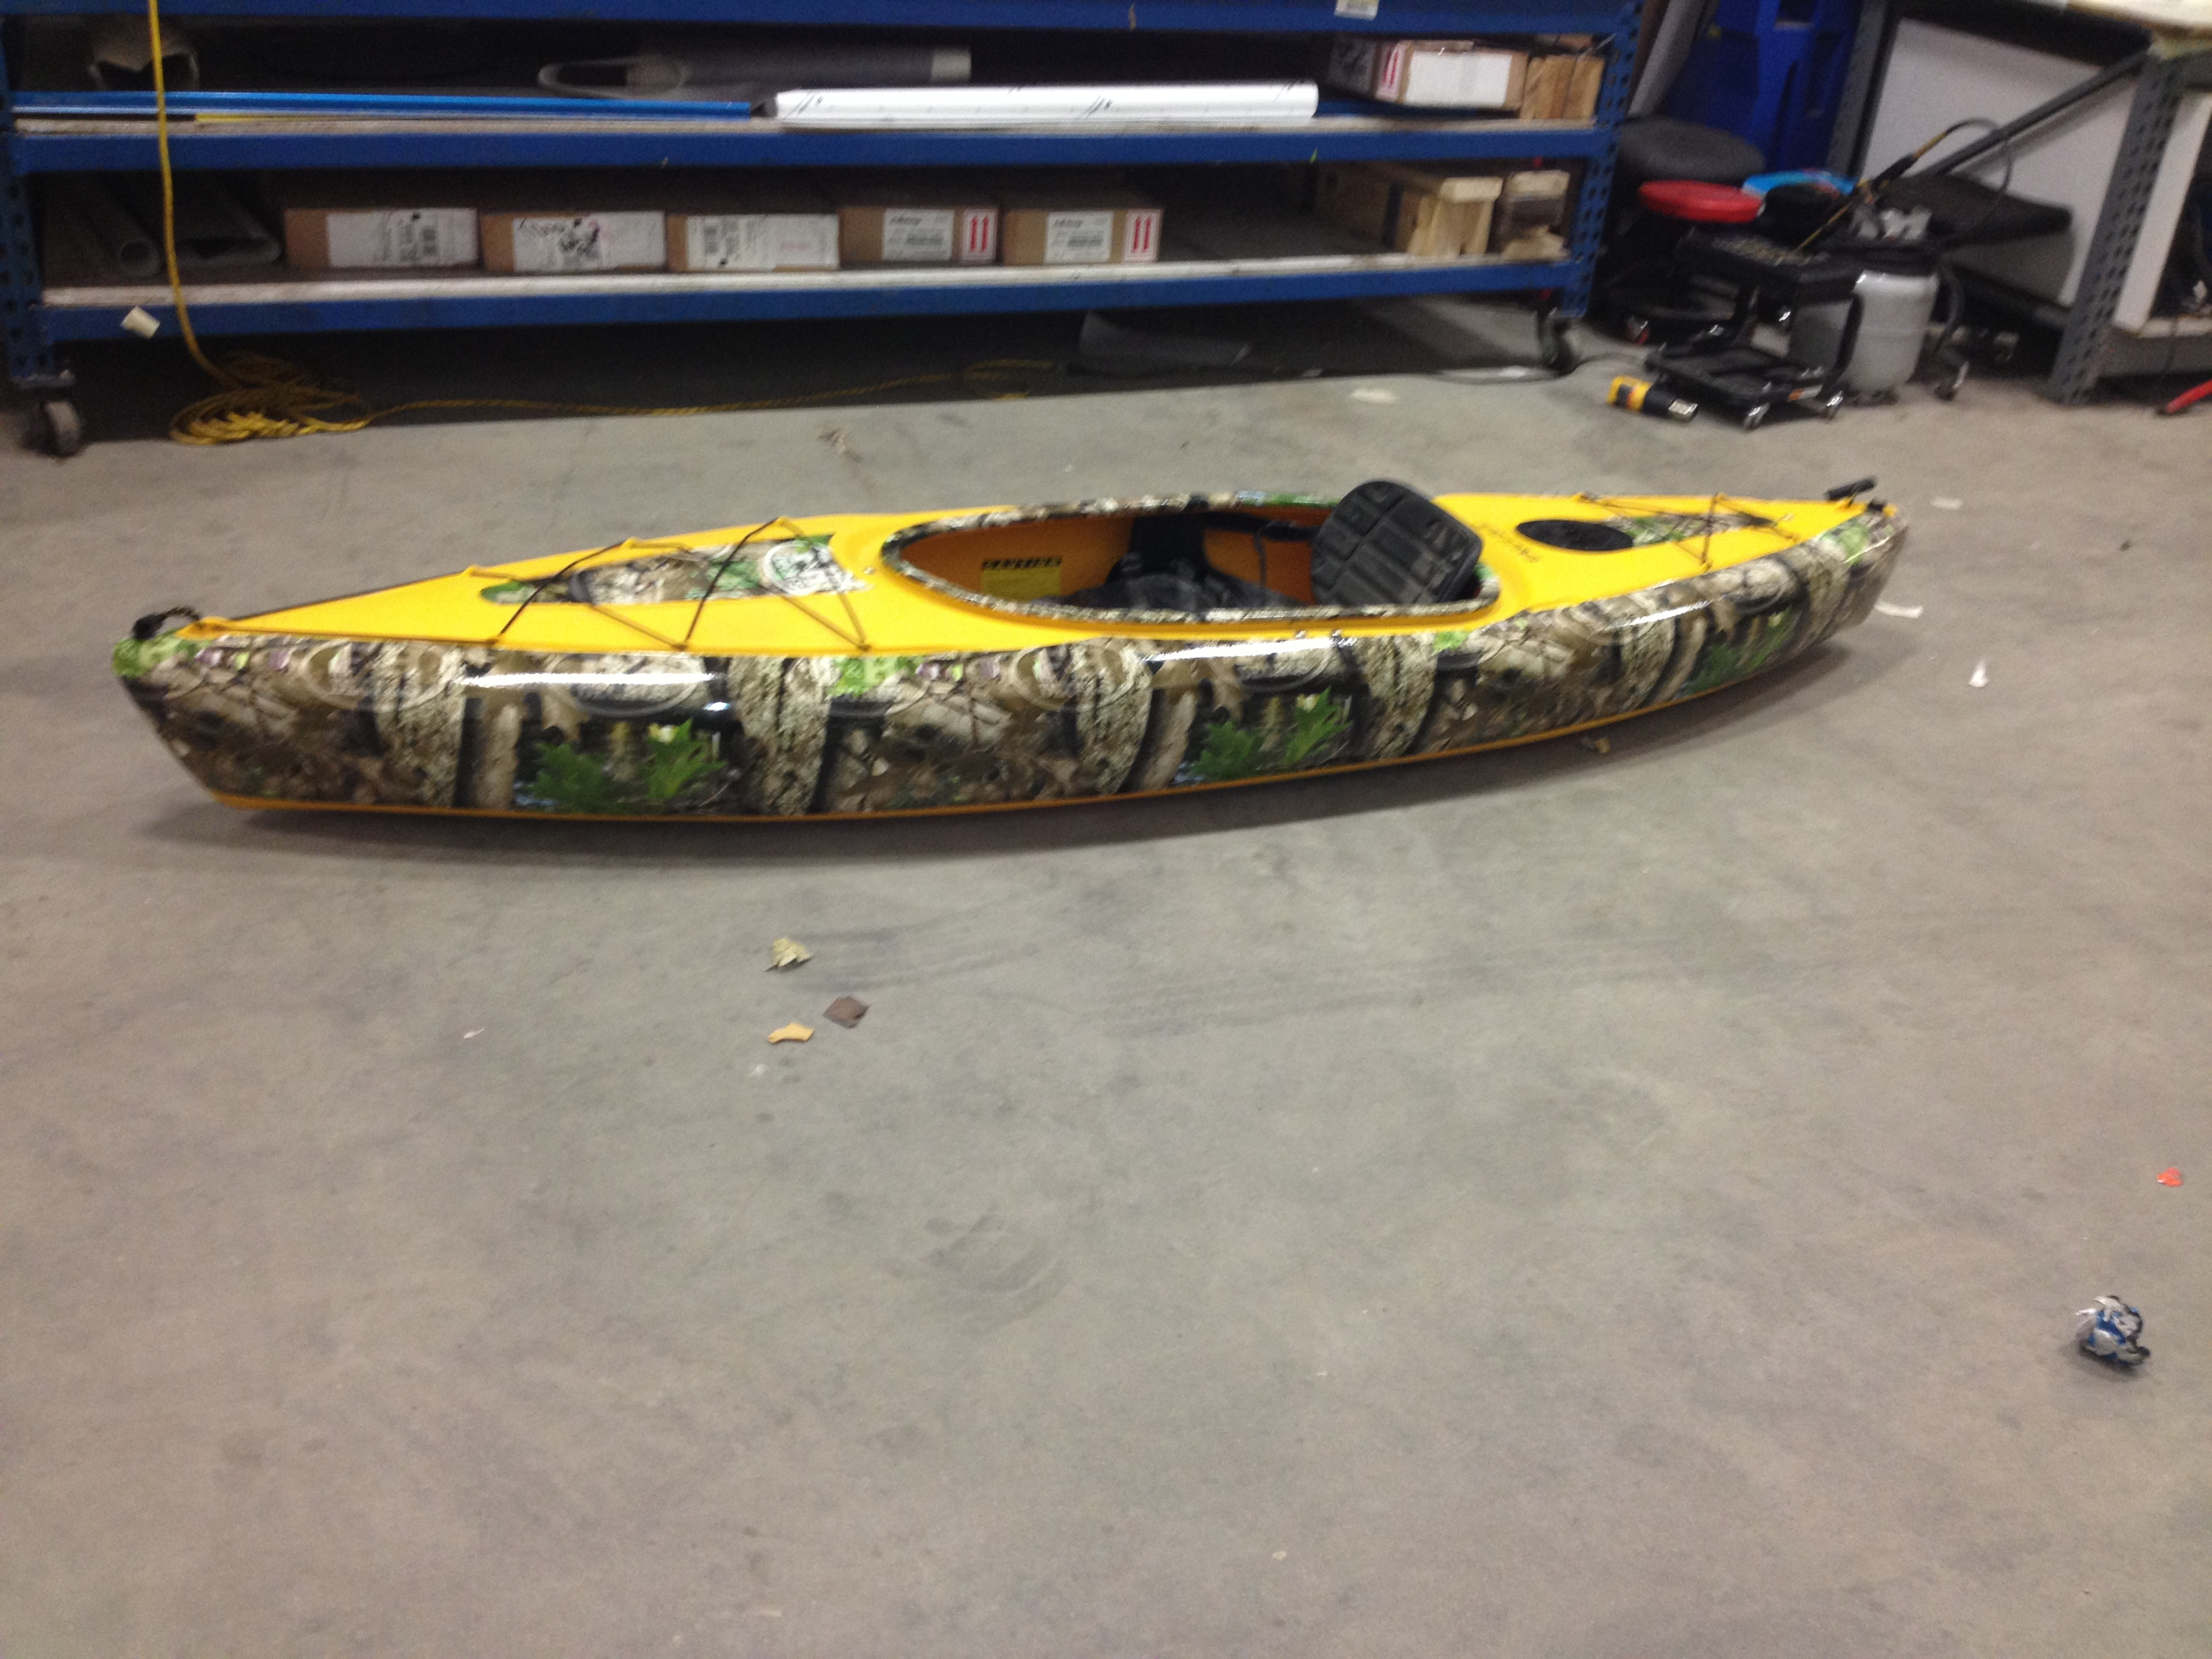 F Amp H Decals Introduces Kayak Wraps To The Masses